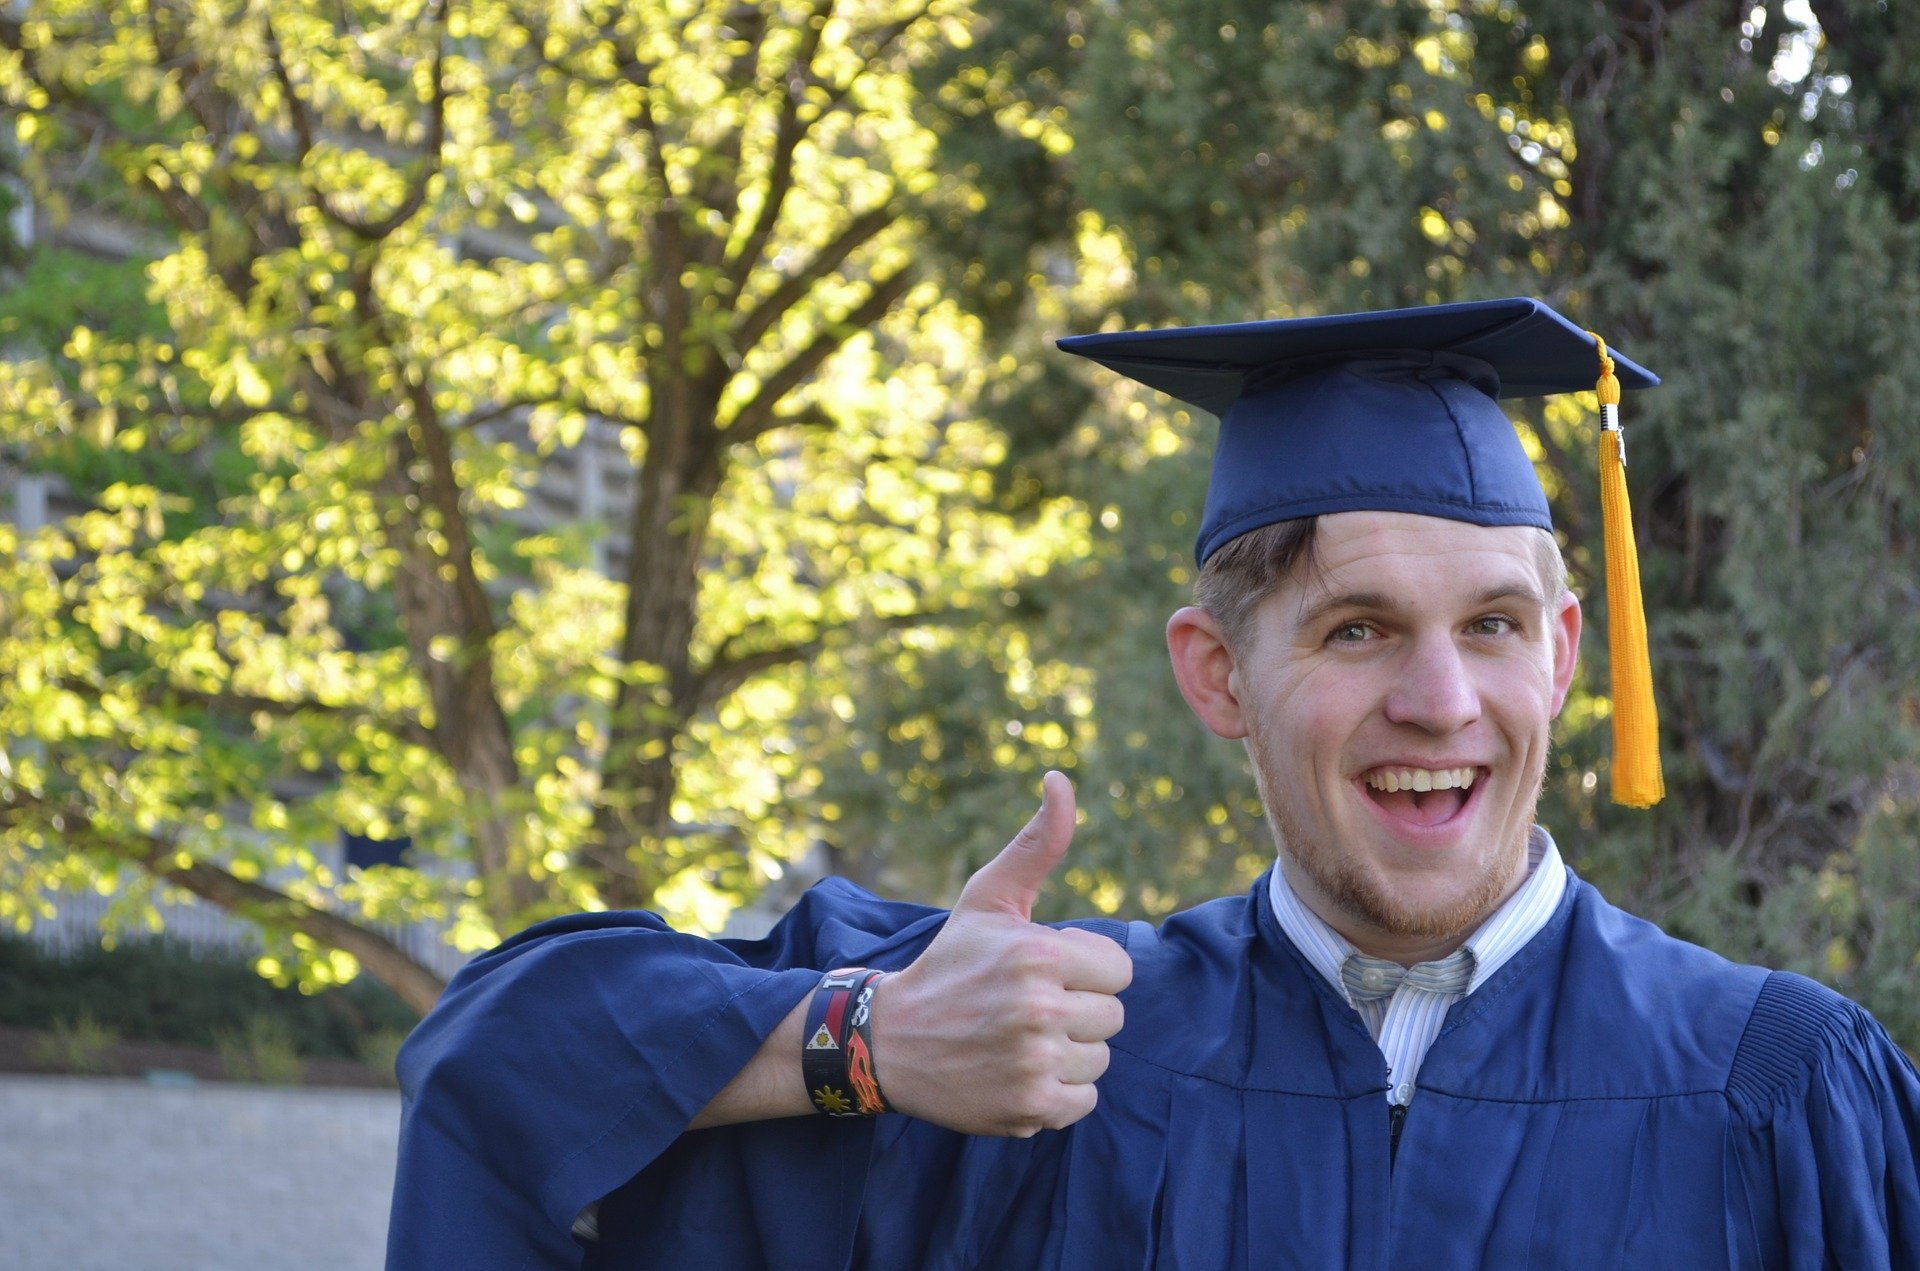 A man shows a thumbs up wearing his graduation attire and beaming with pride | Source: Pixabay